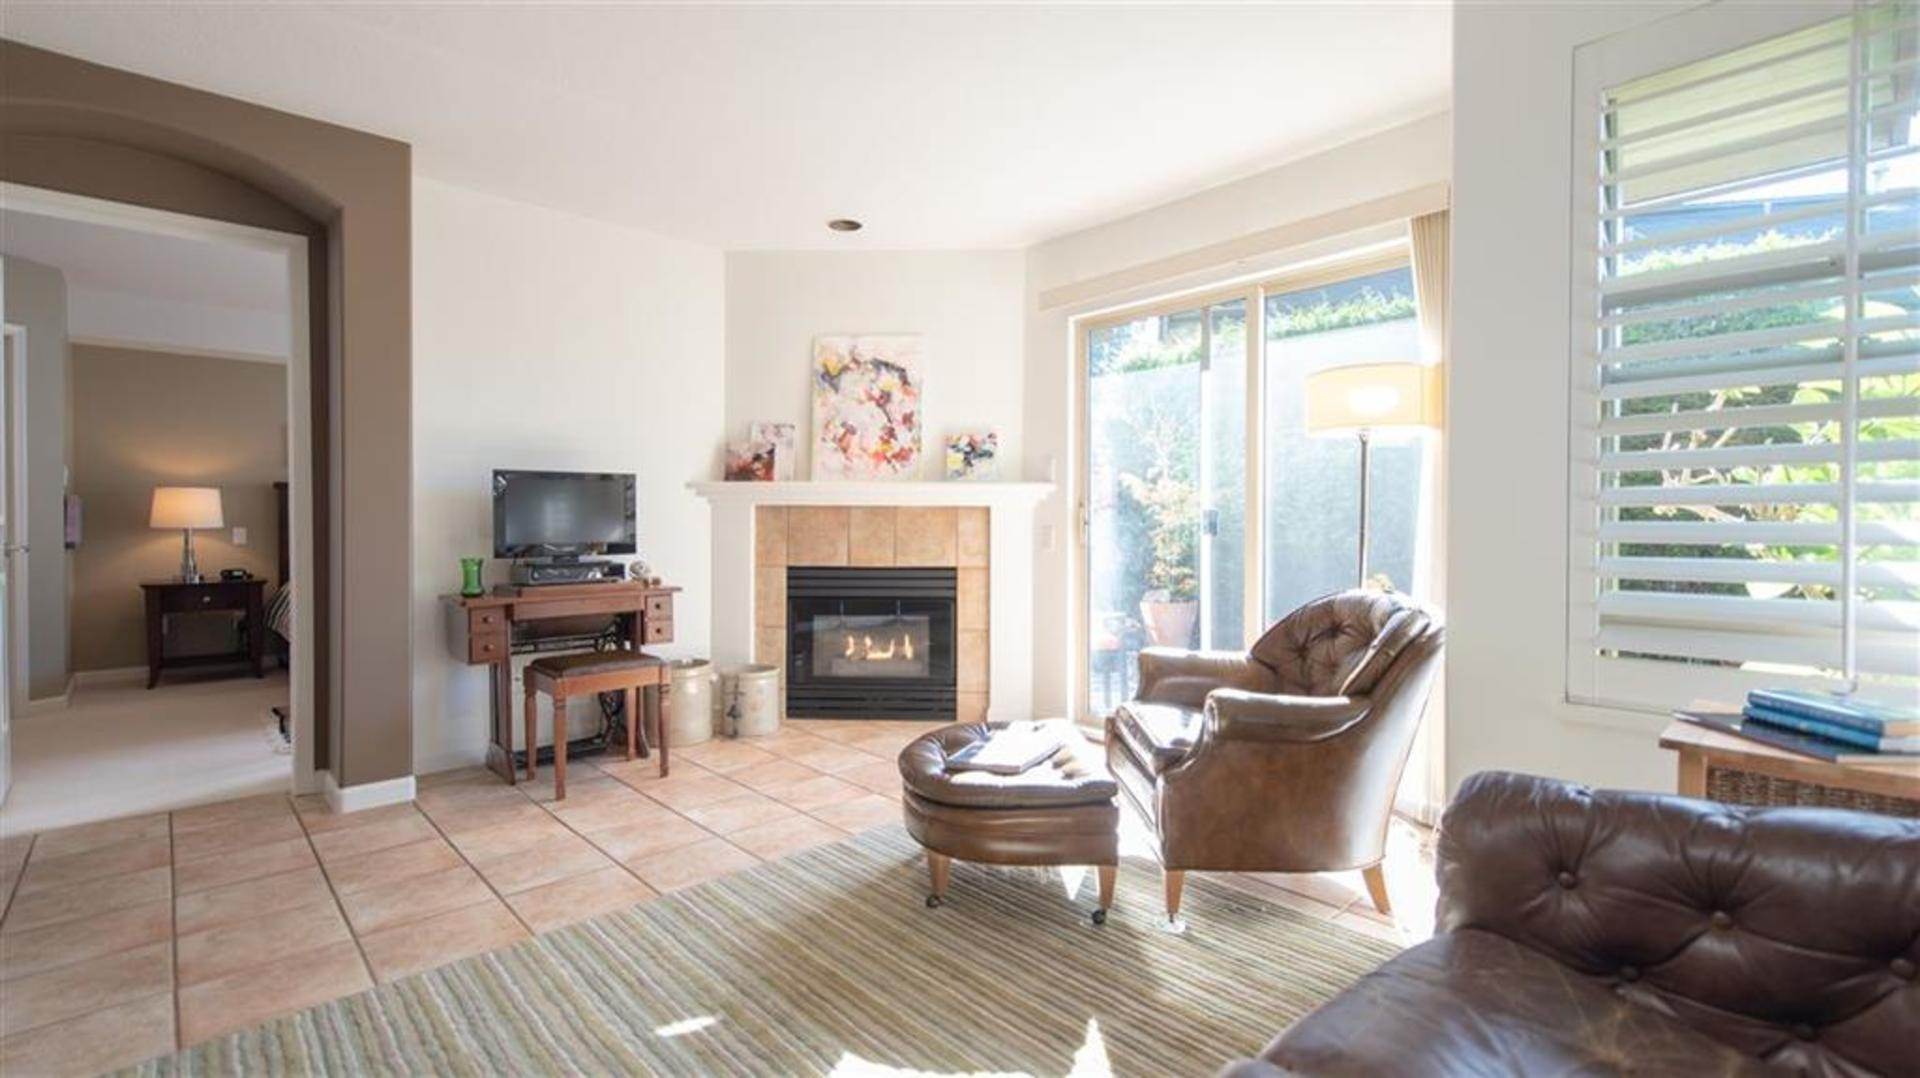 262337785-8 at 57 - 1550 Larkhall Crescent, Northlands, North Vancouver